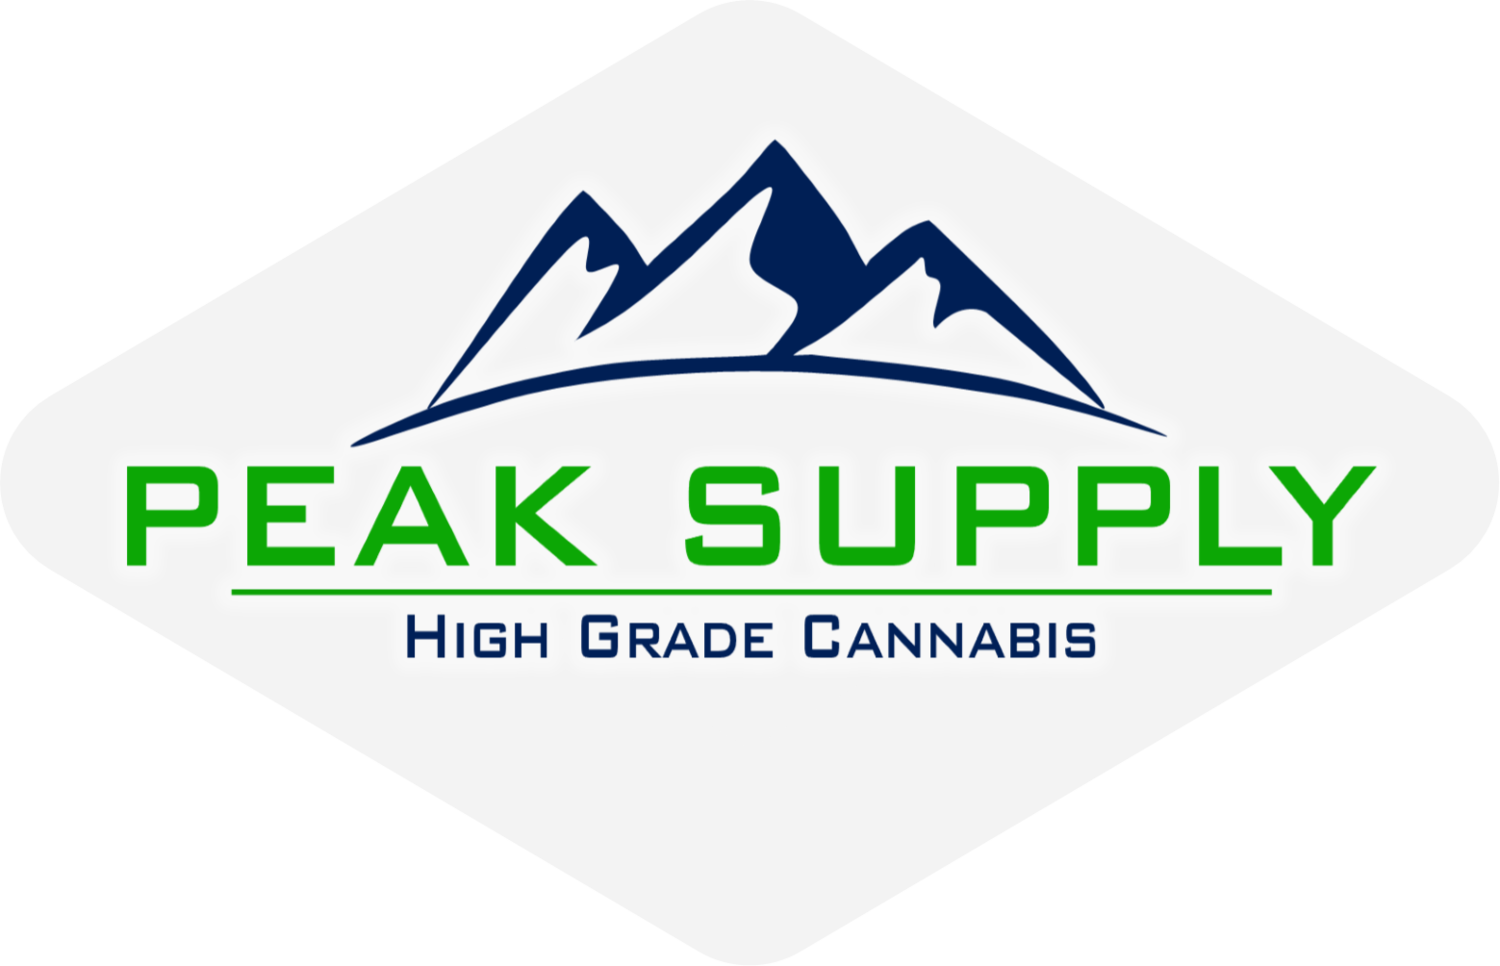 Peak Supply